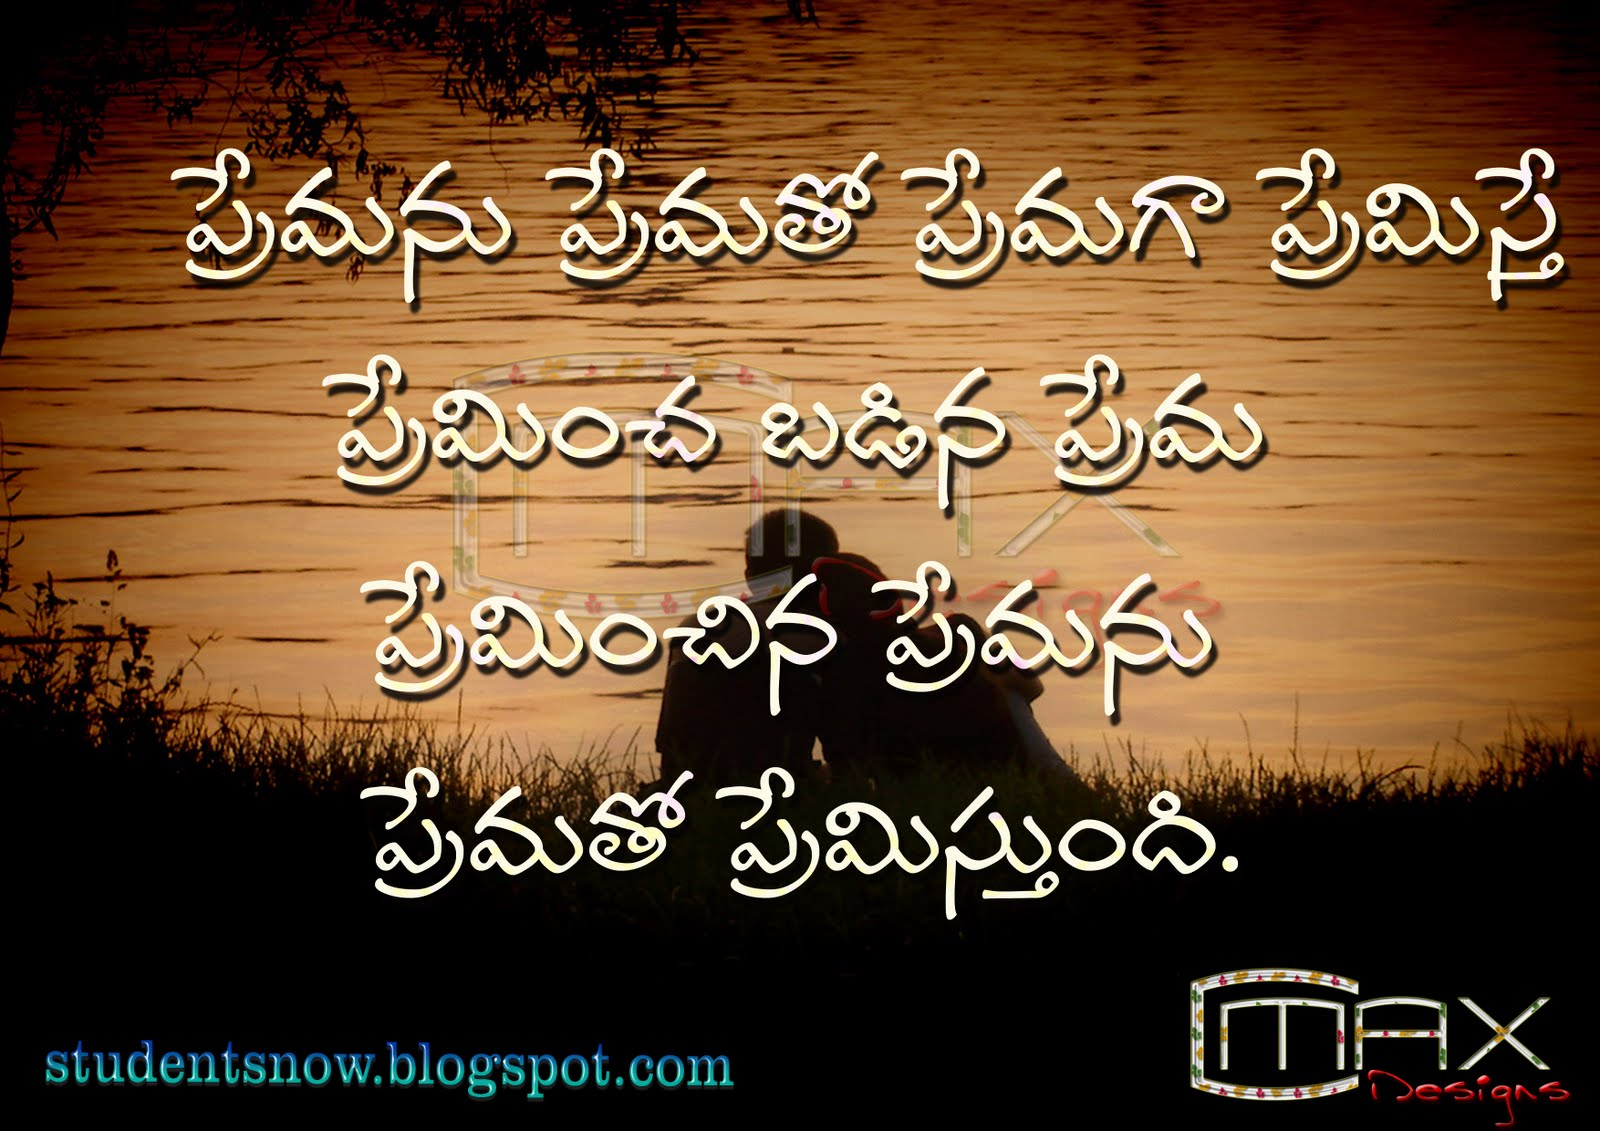 Prema Telugu Love Quote Image,